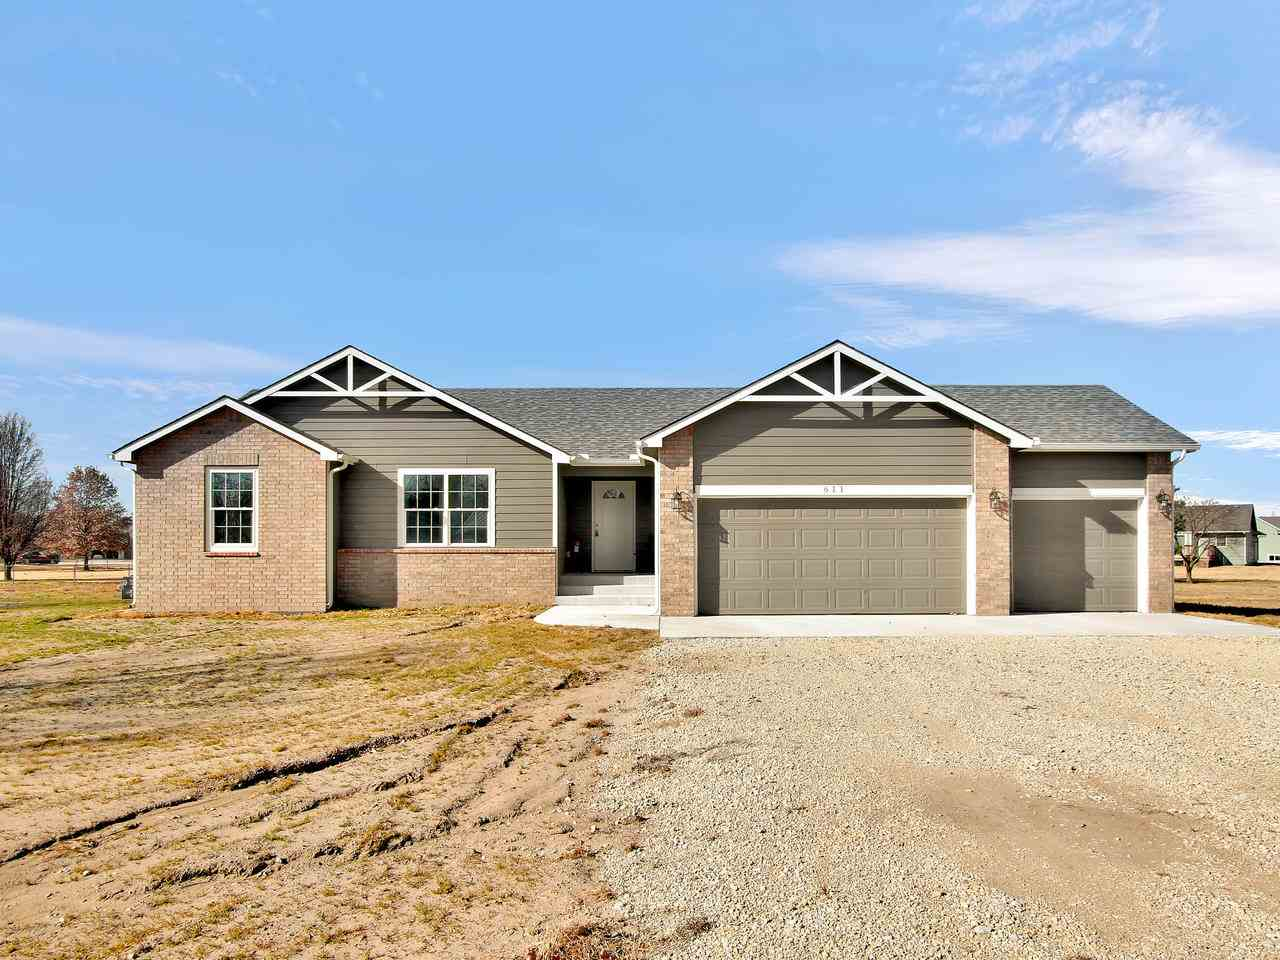 Brand new 4 bedroom, 3 bath ranch on a 1 acre lot with no specials. All the new upgrades you would w